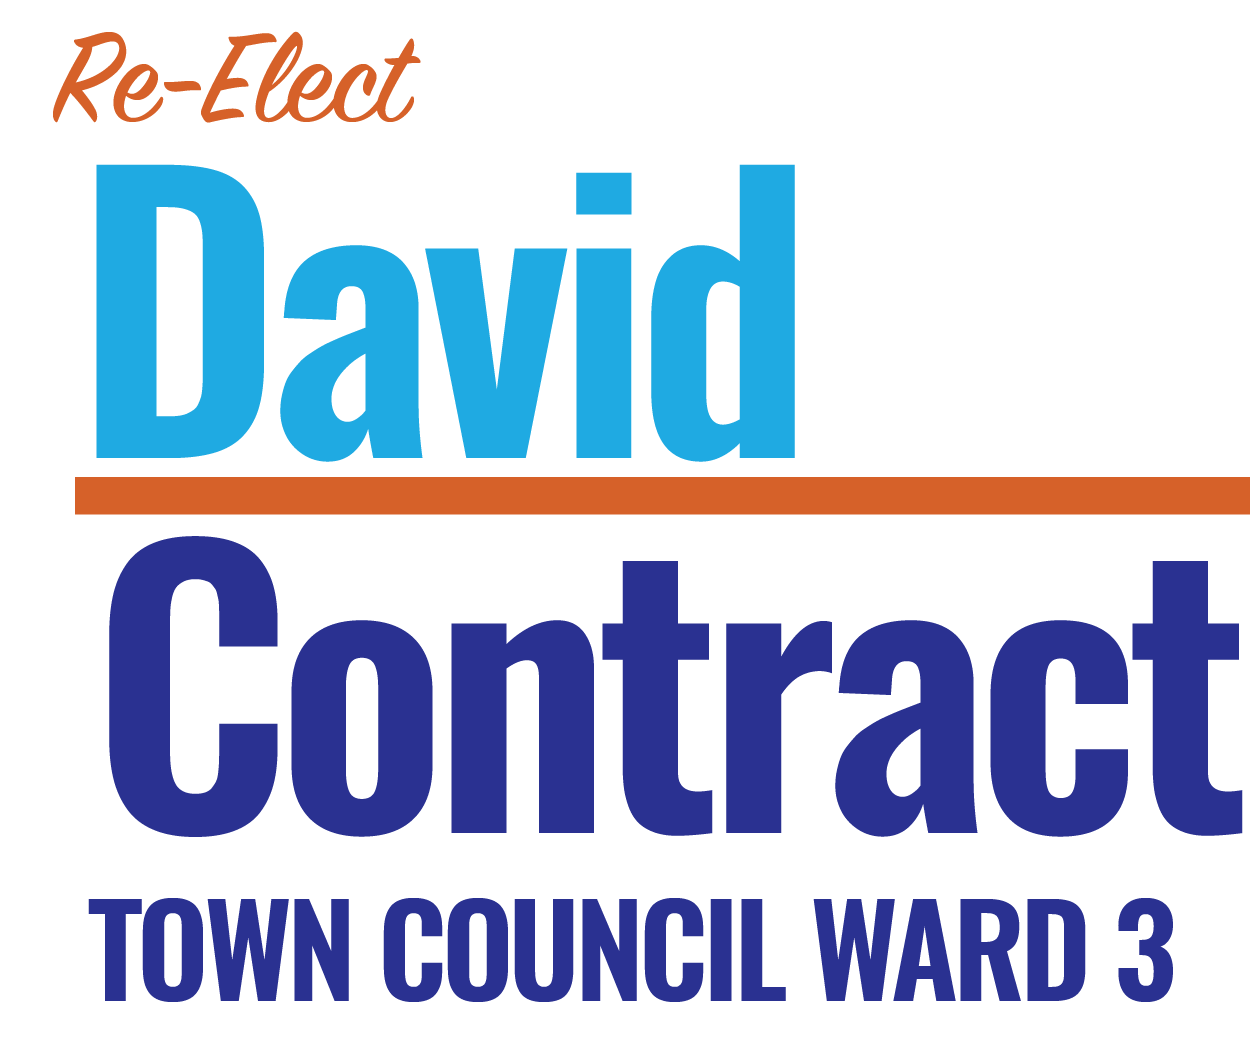 Re-elect David Contract for Ward 3